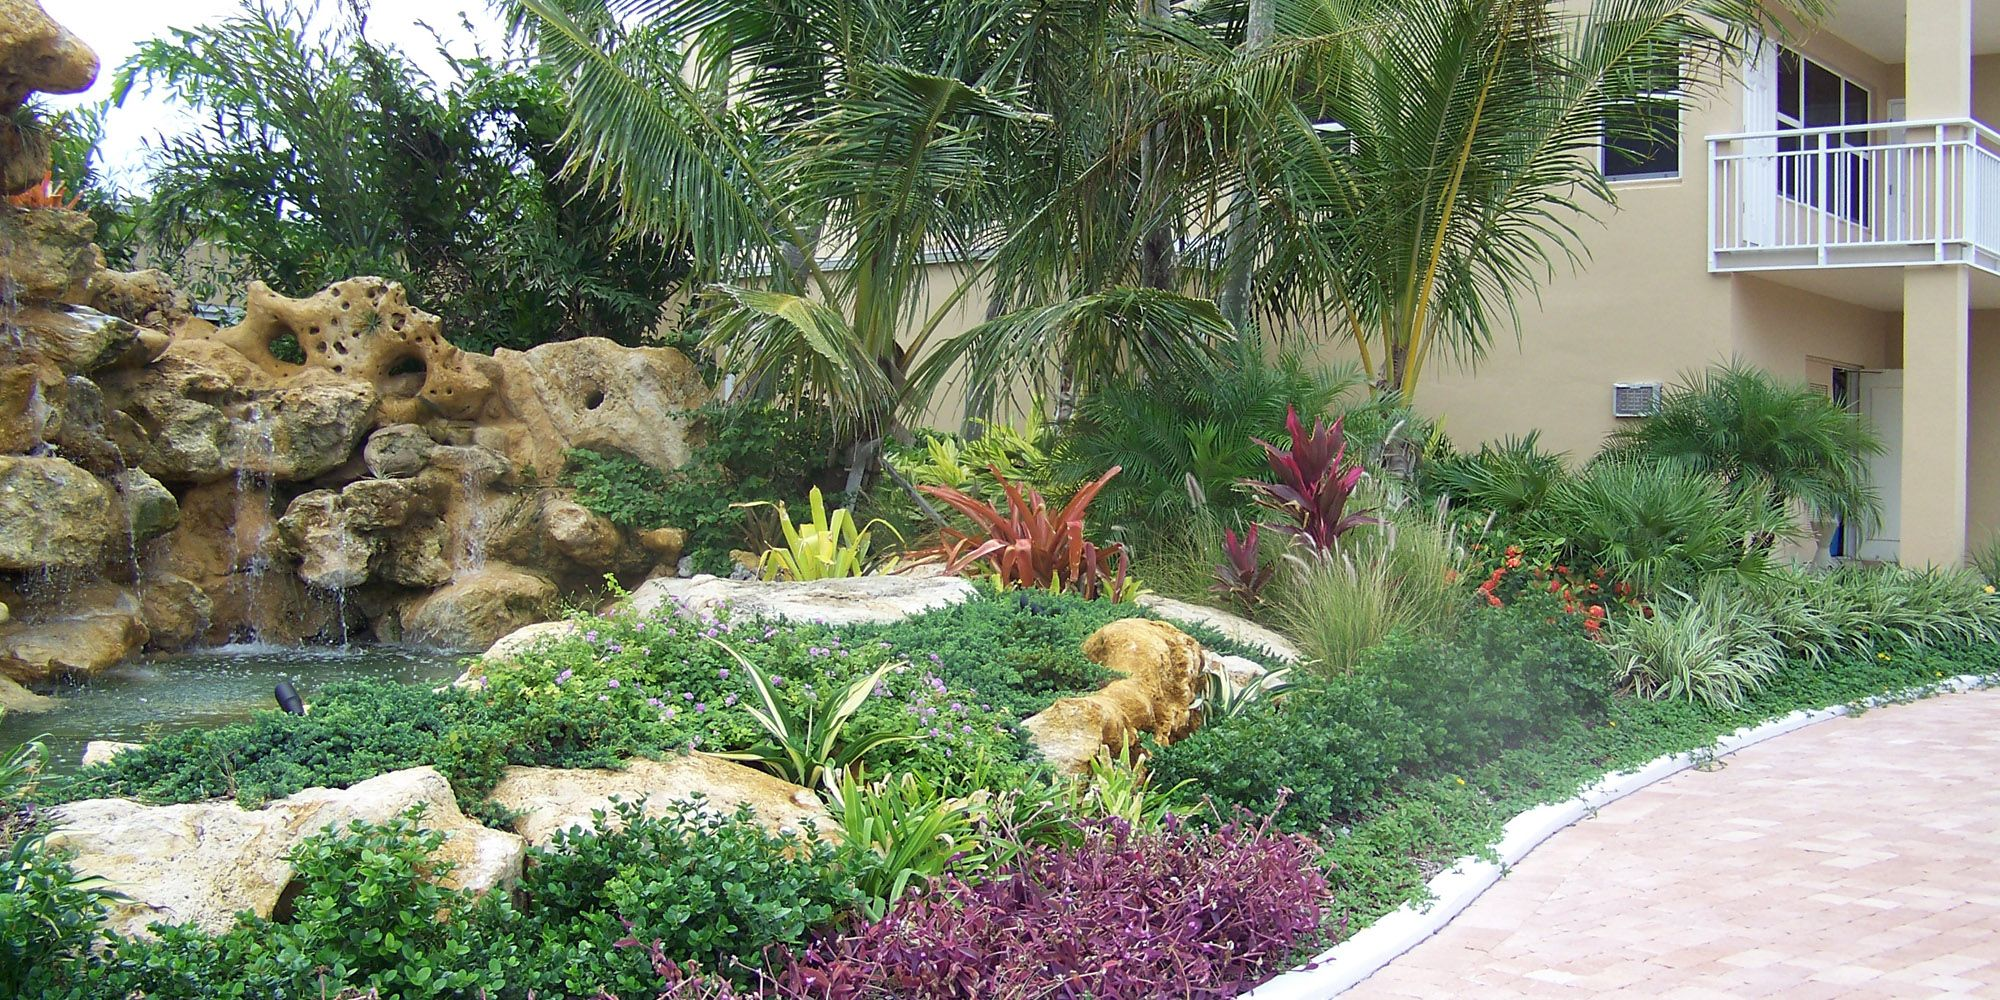 tropical landscapes ideas solutions for planning outdoor home front garden design ideas with designing ponds